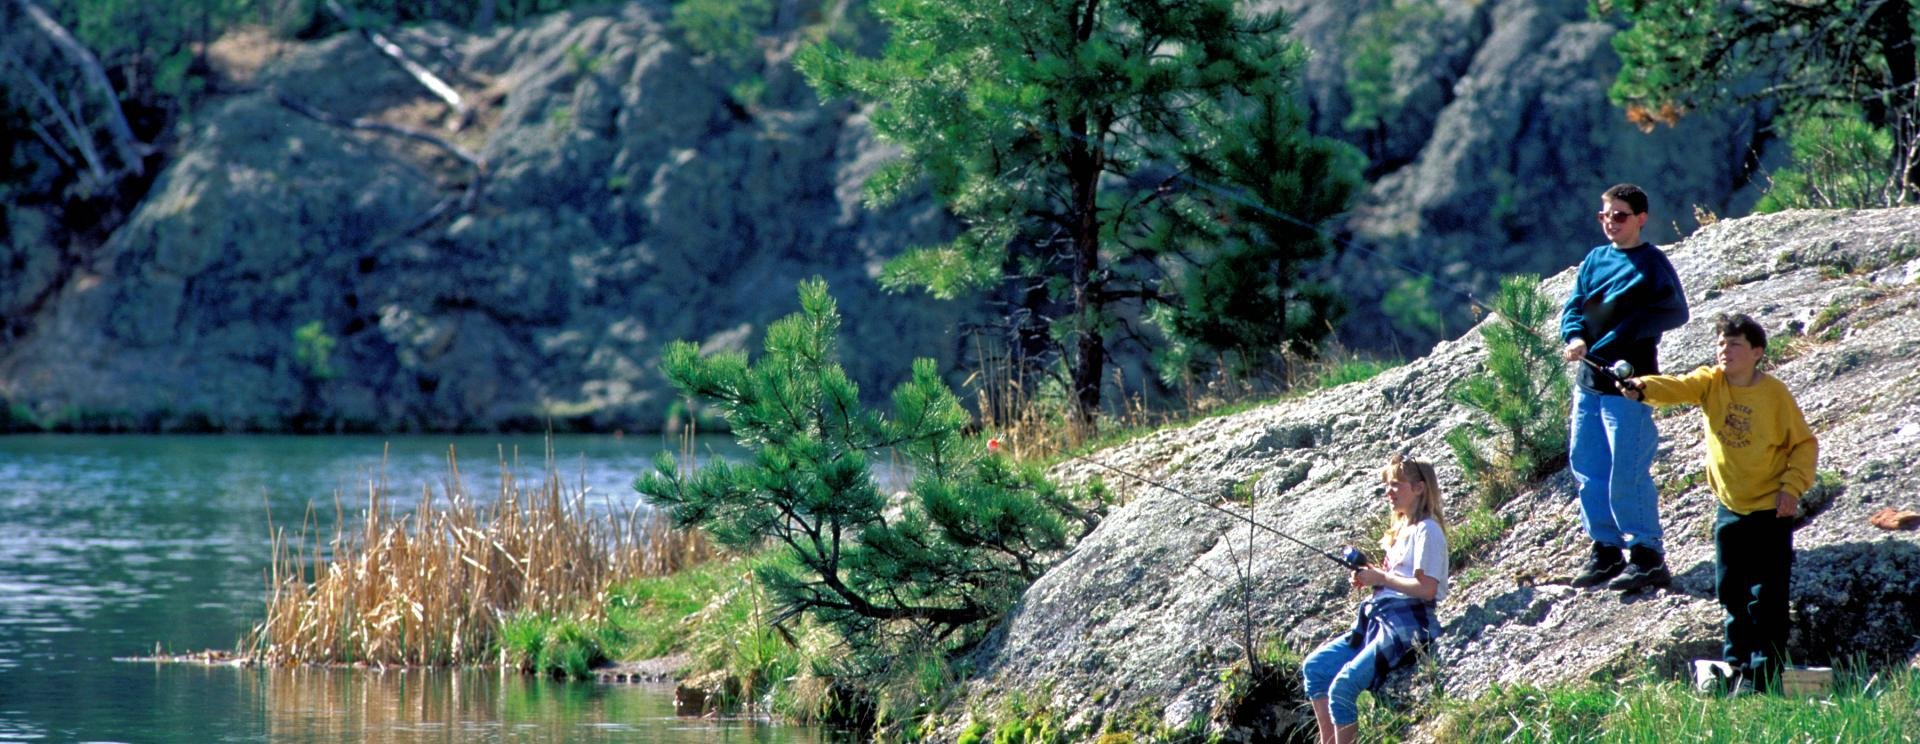 State Park Open House and Free Fishing Weekend